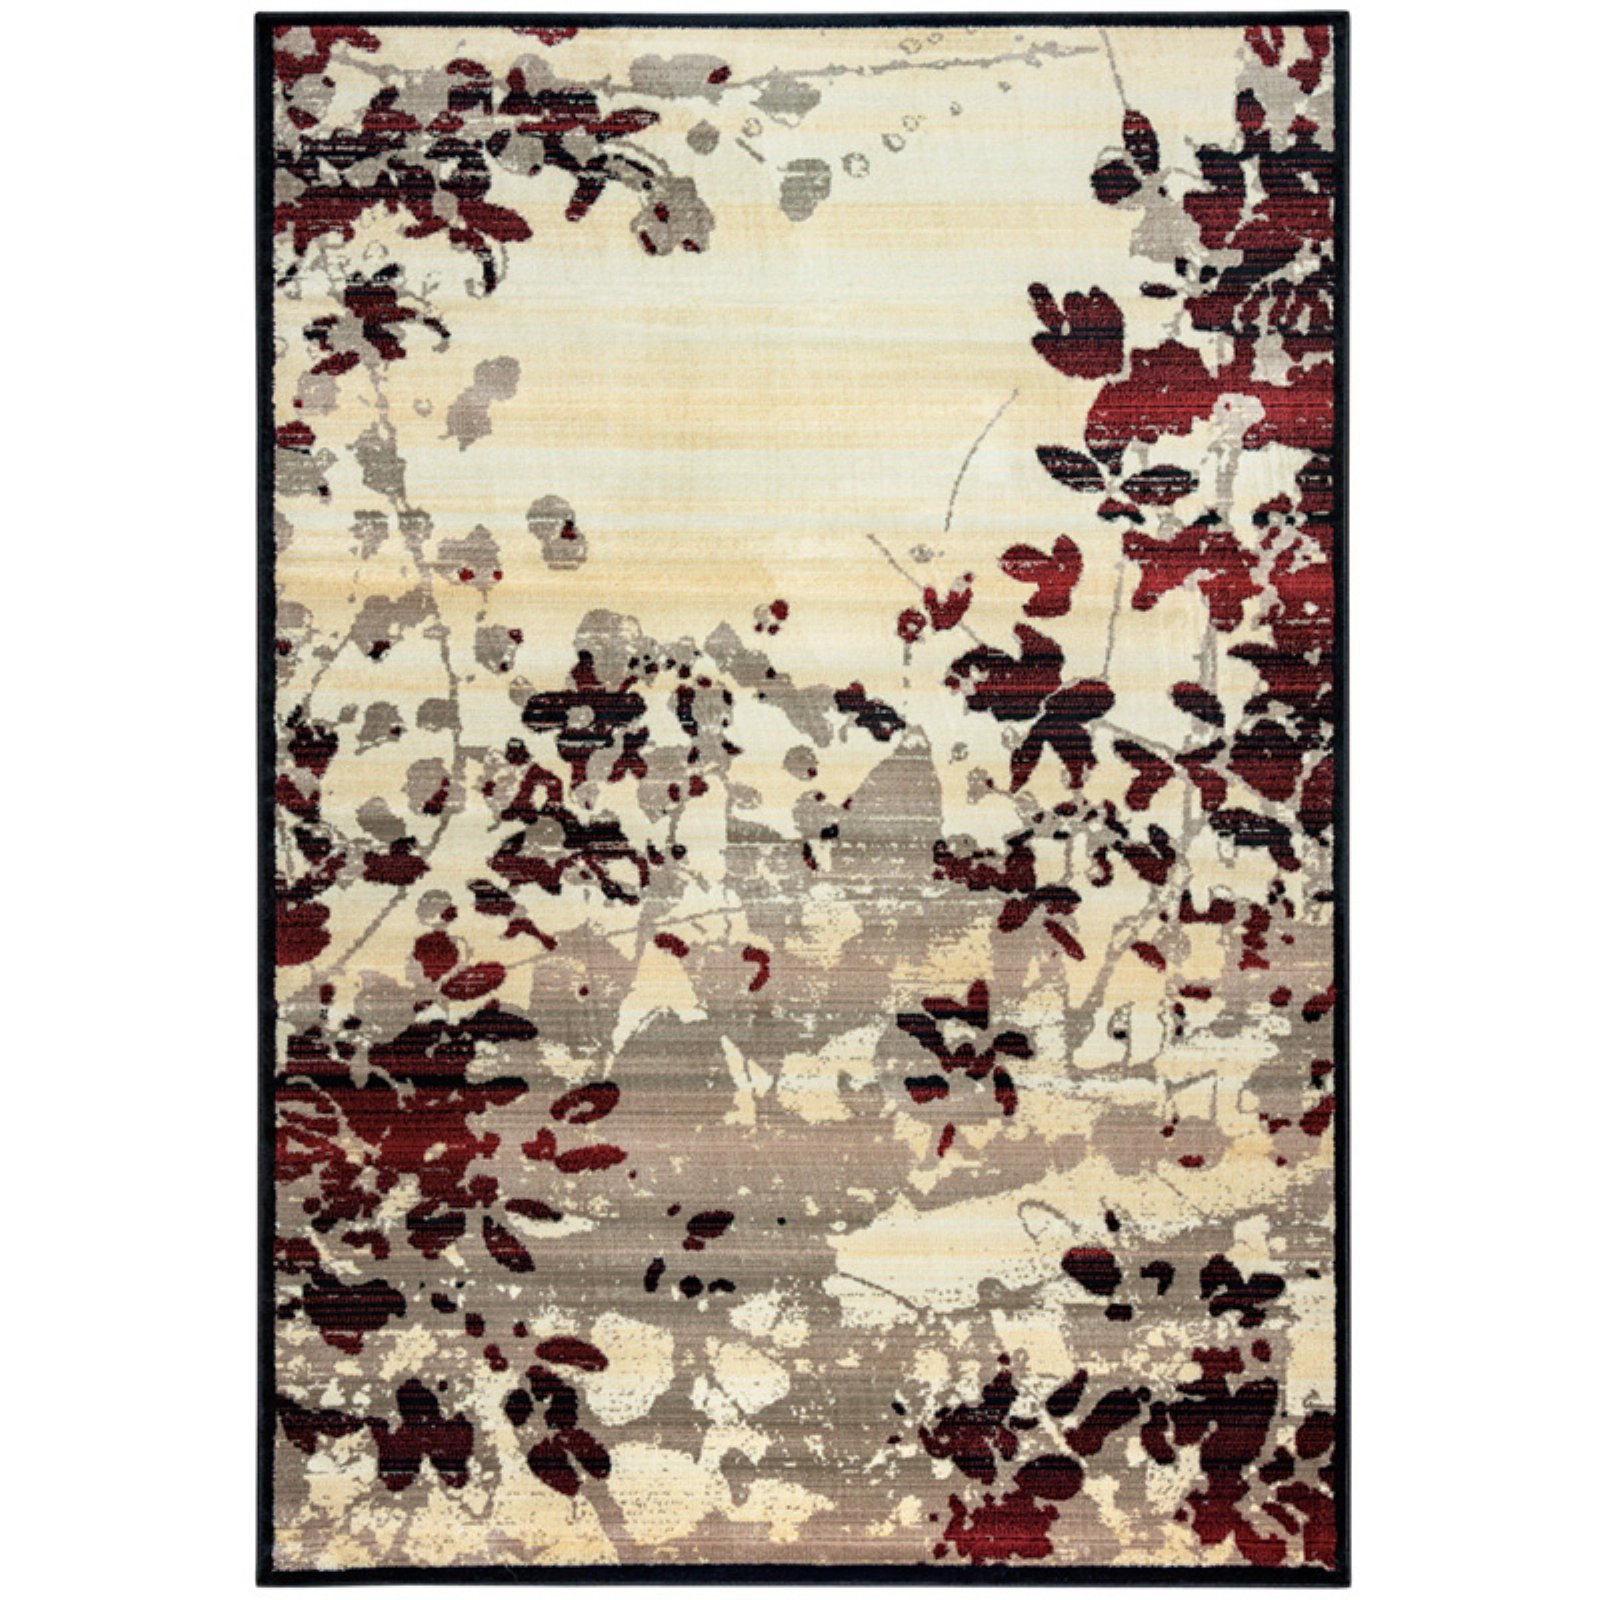 Rizzy Home Bayside BS3584 Rug - (9 Foot 2 Inch x 12 Foot 6 Inch)